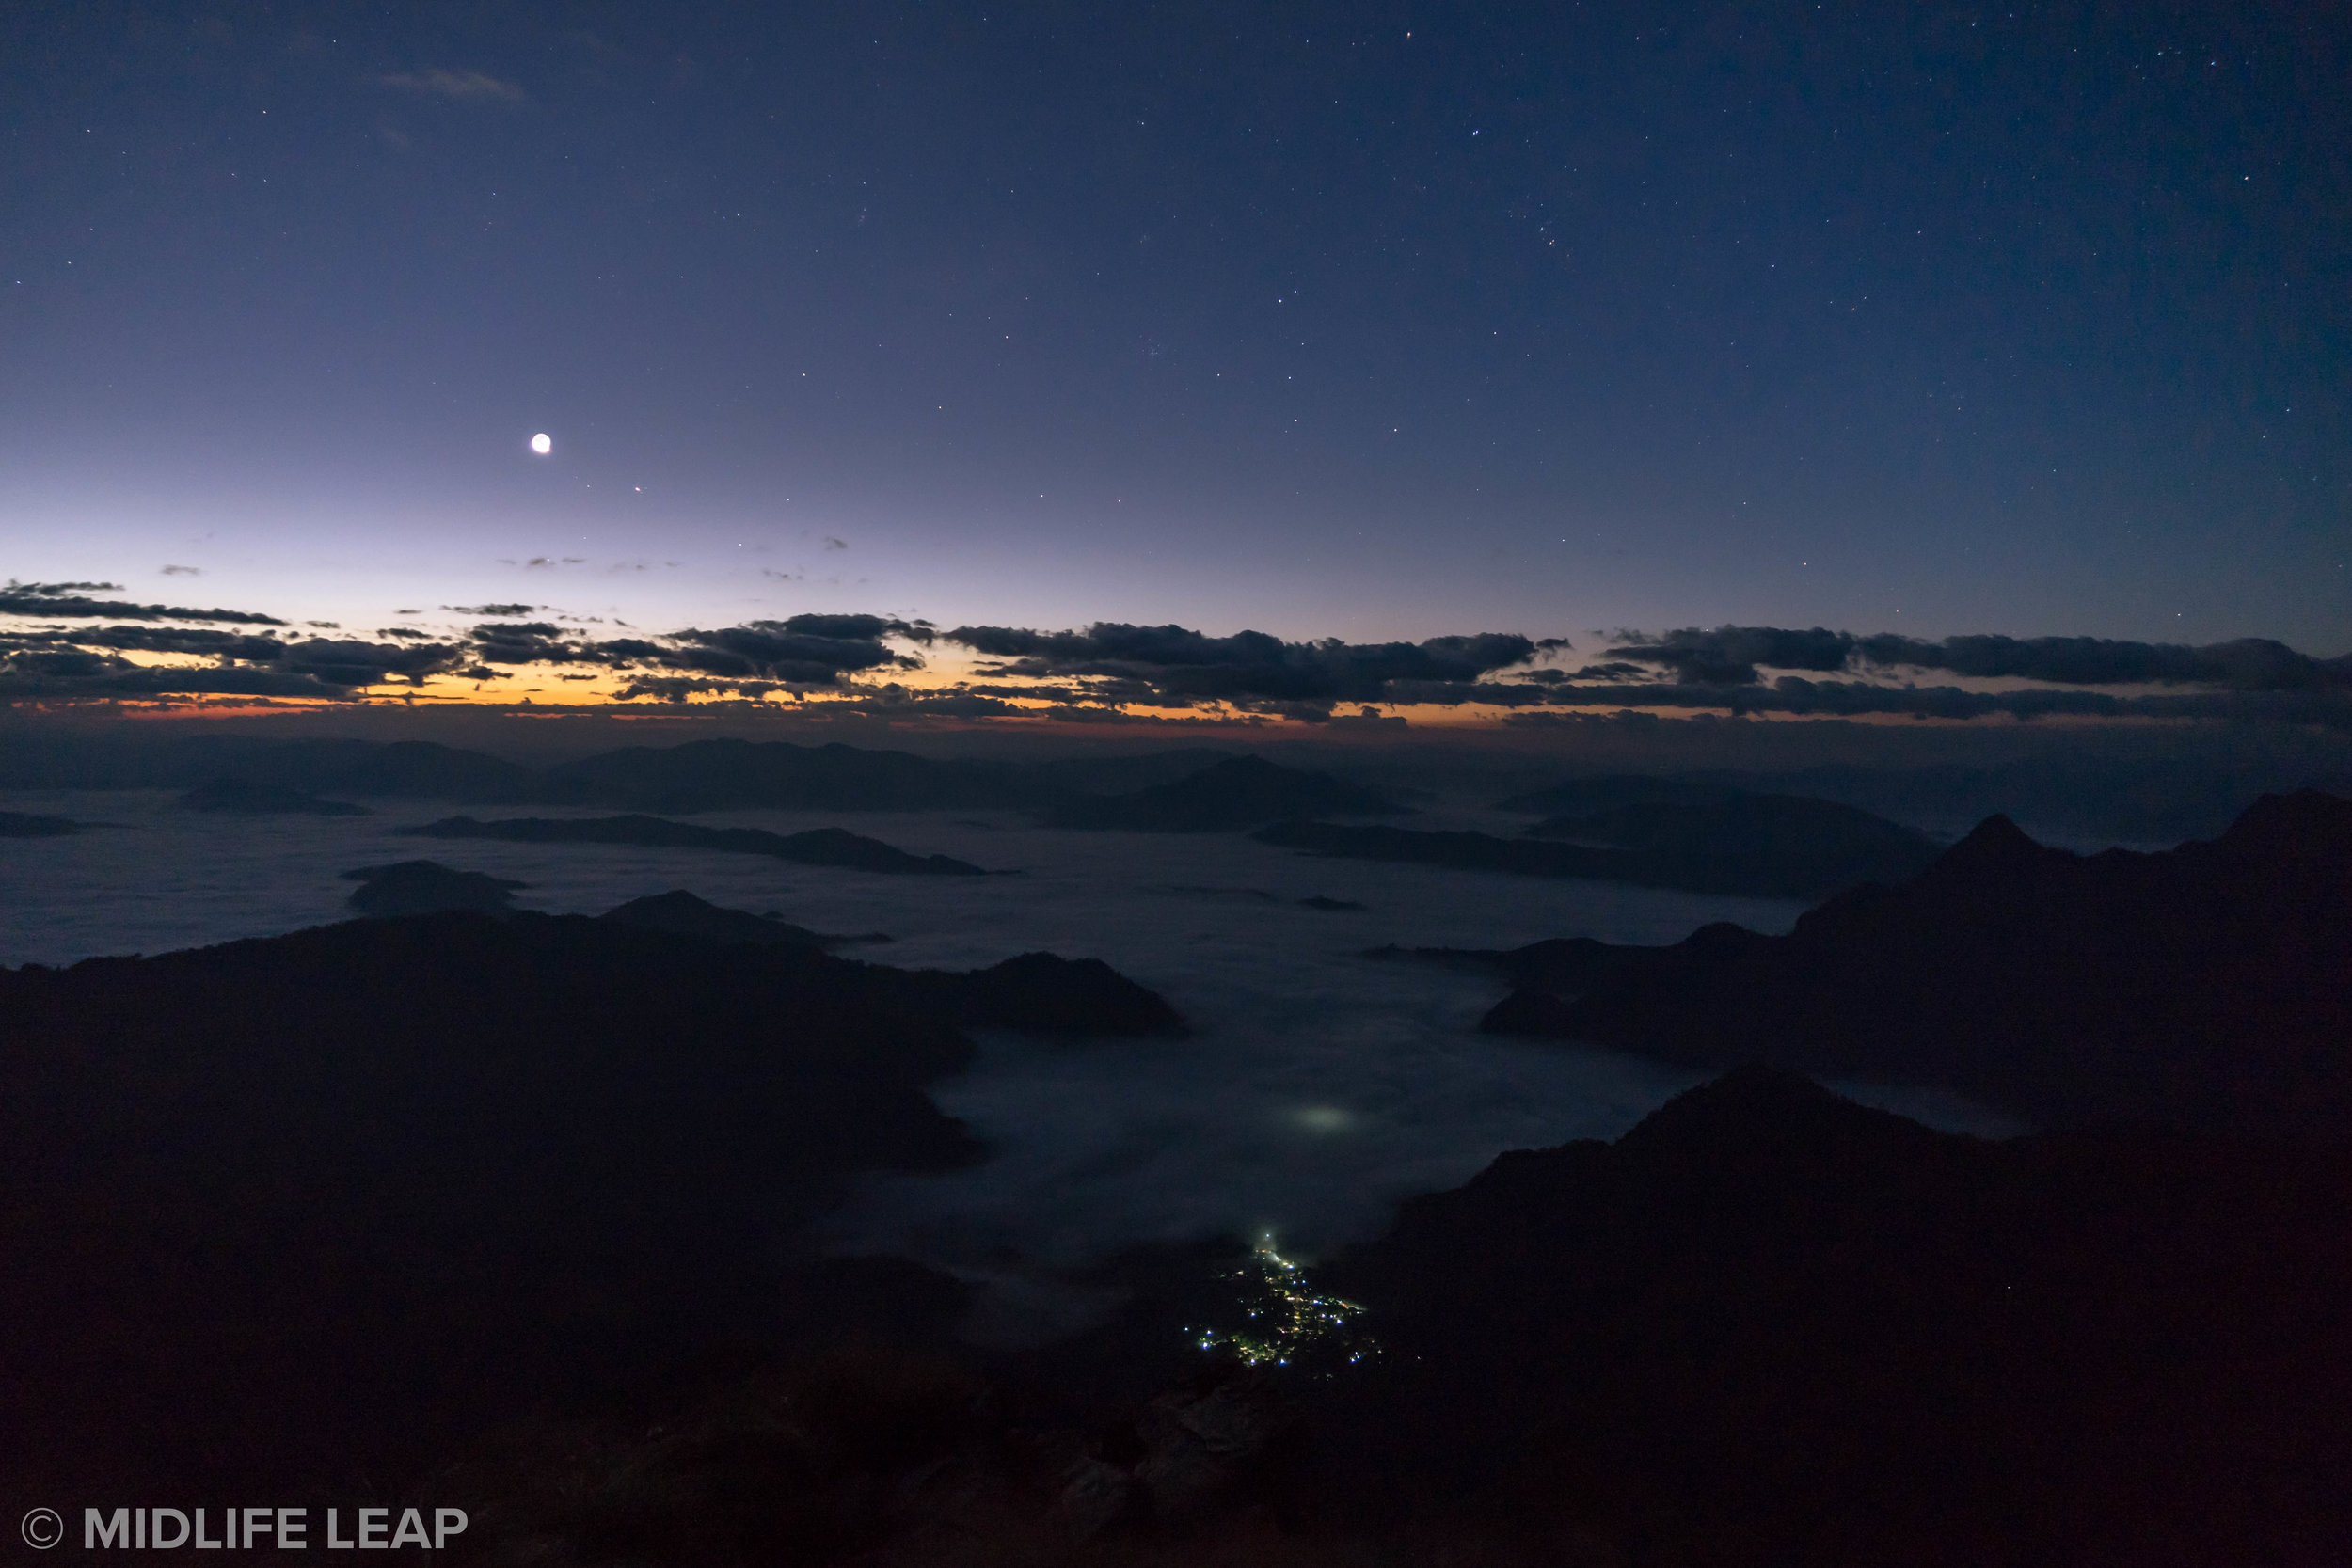 That's the moon in the sky, and a small town in Laos below